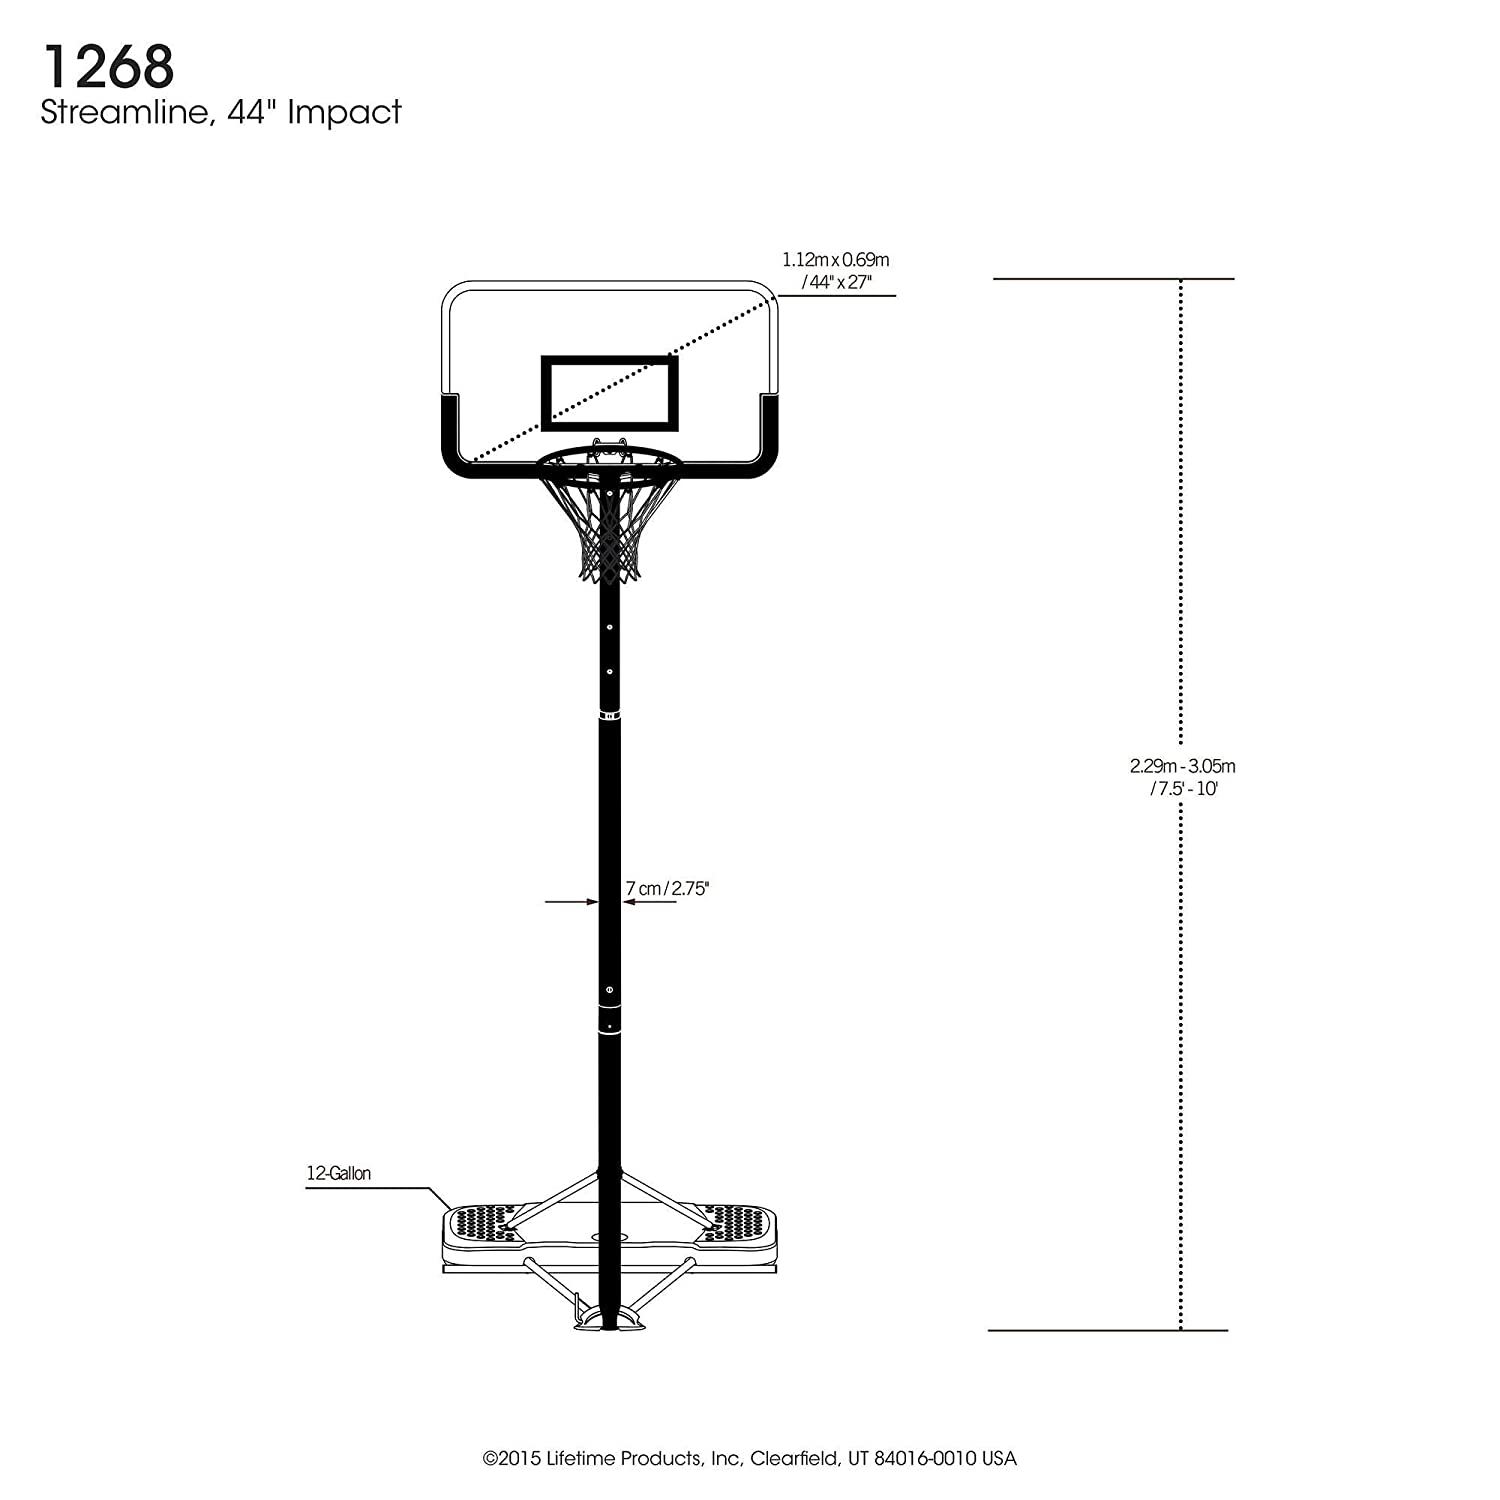 Amazon.com : Lifetime 1268 Streamline Impact Portable Basketball System, 44  Inch Backboard : Portable Basketball Backboards : Sports & Outdoors